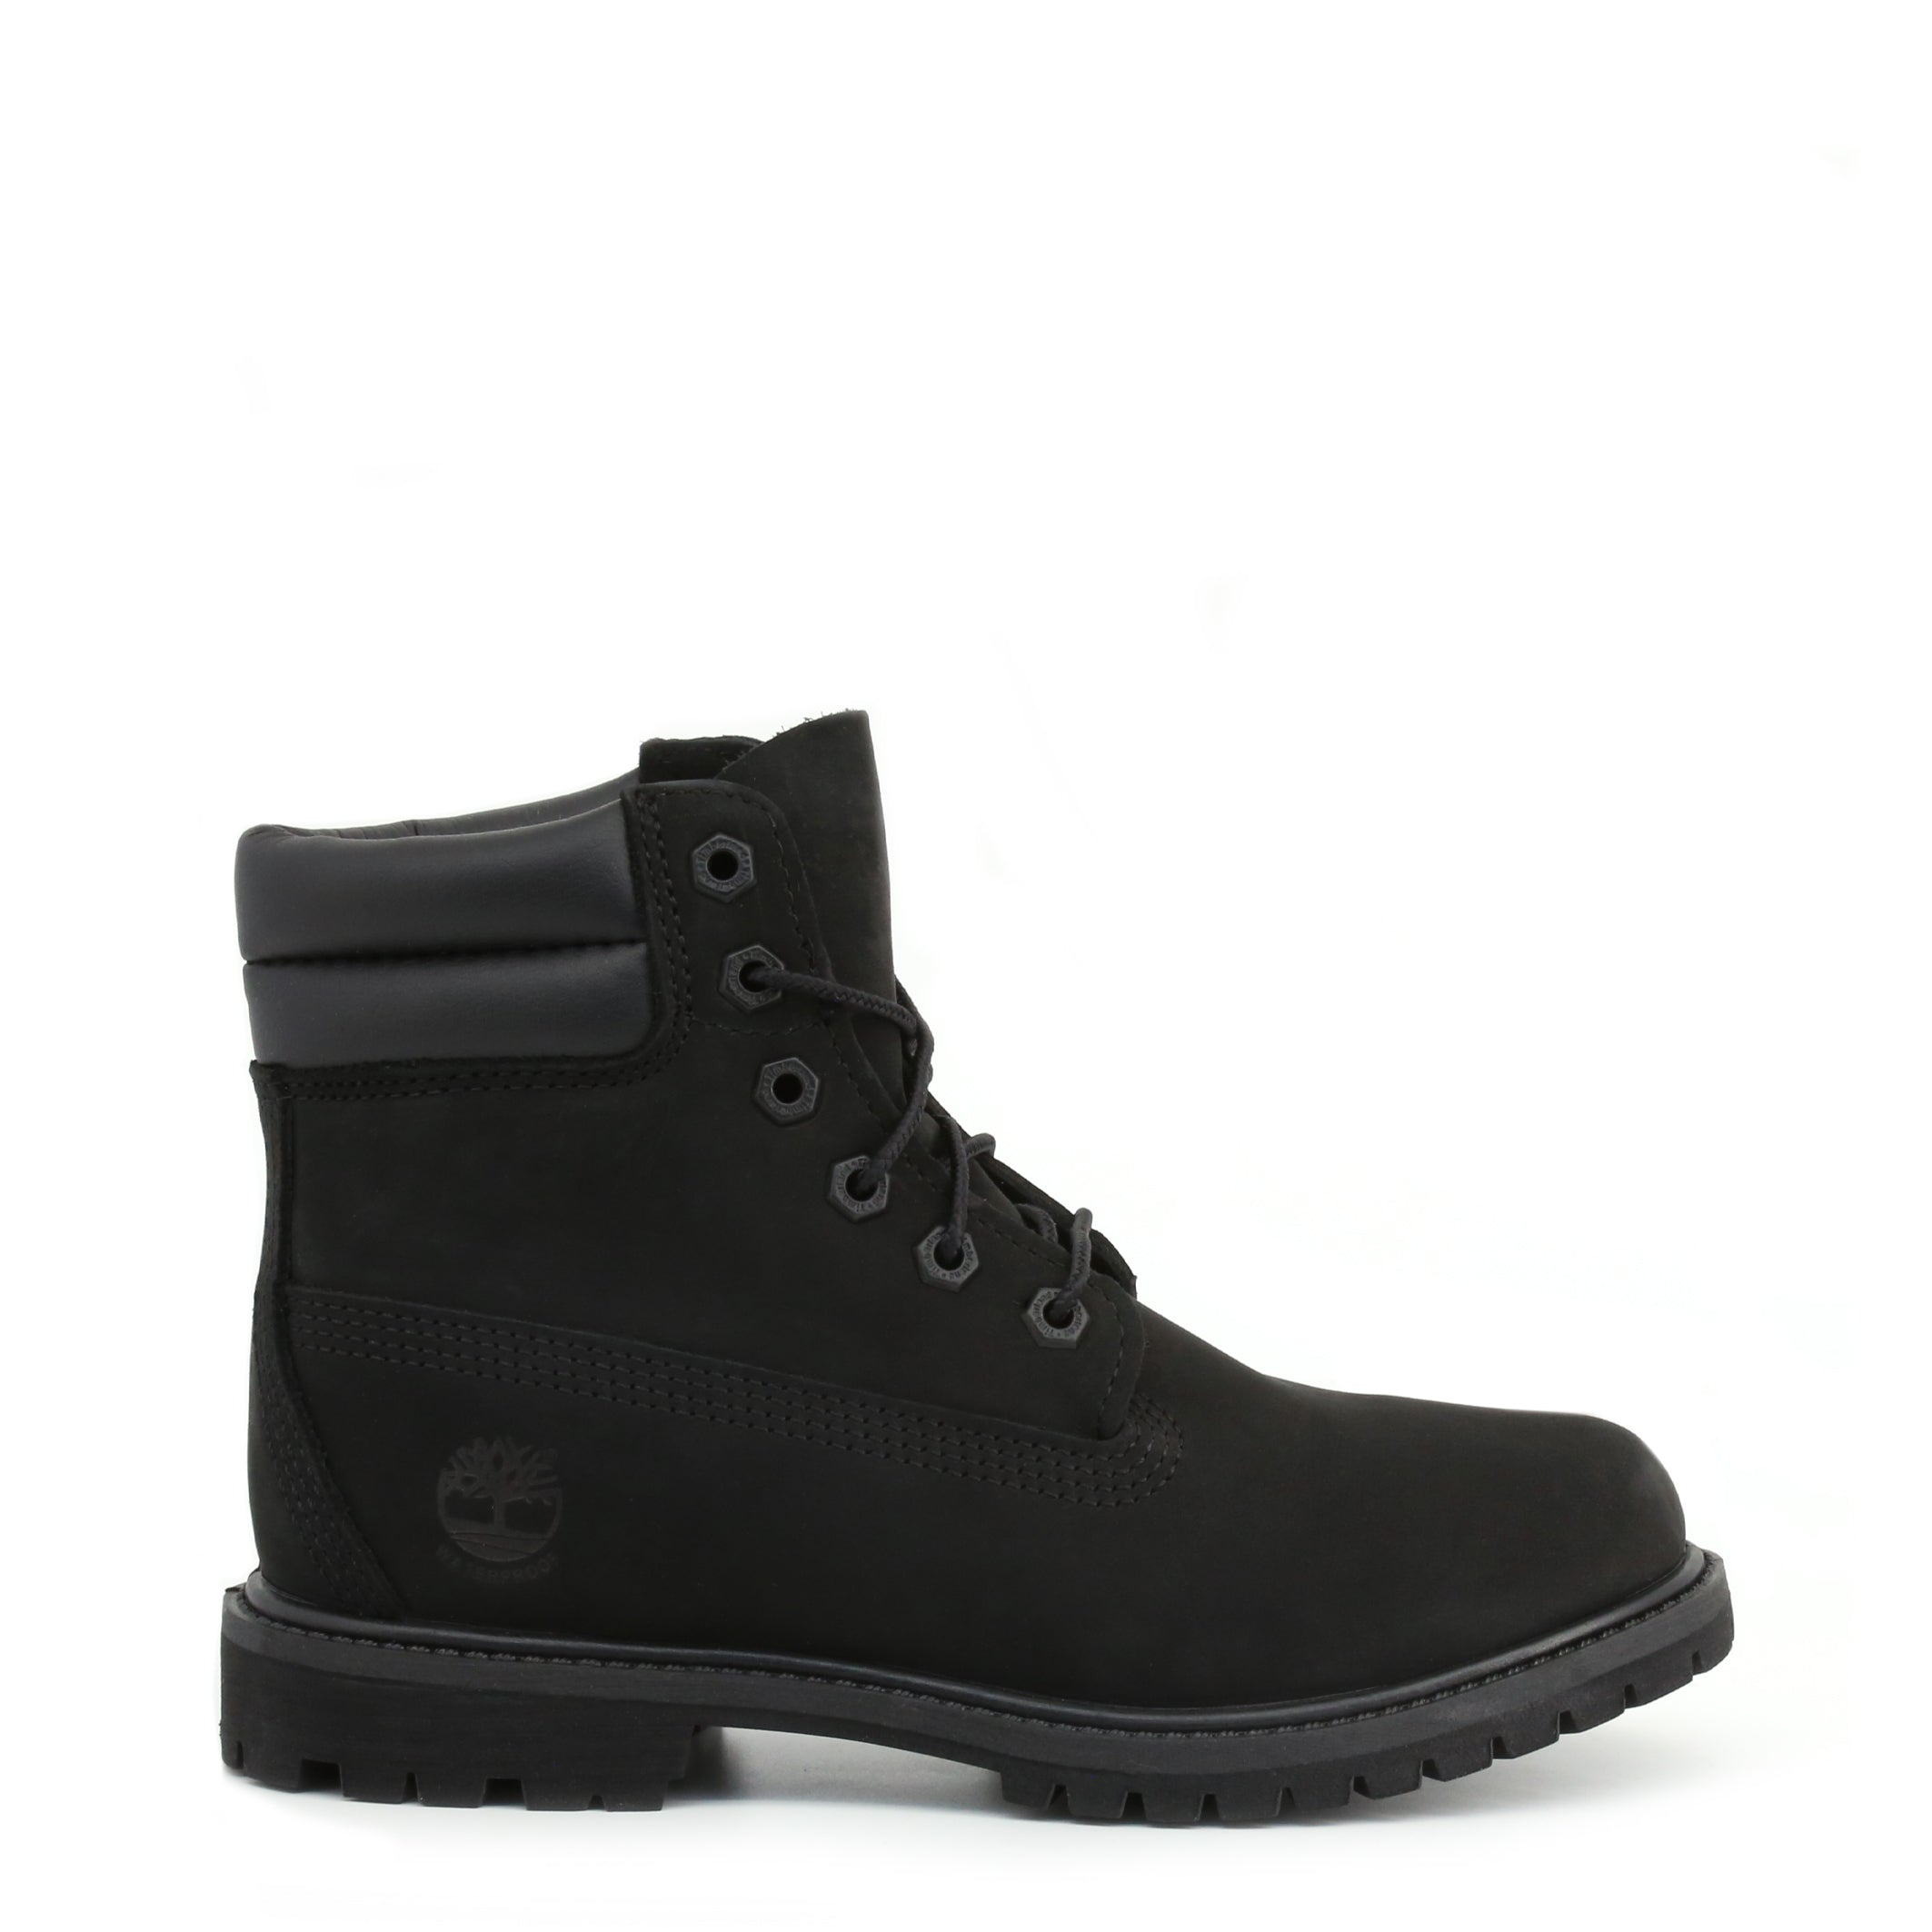 Timberland - 6IN-DBL-COLLAR - Women's Ankle Boots